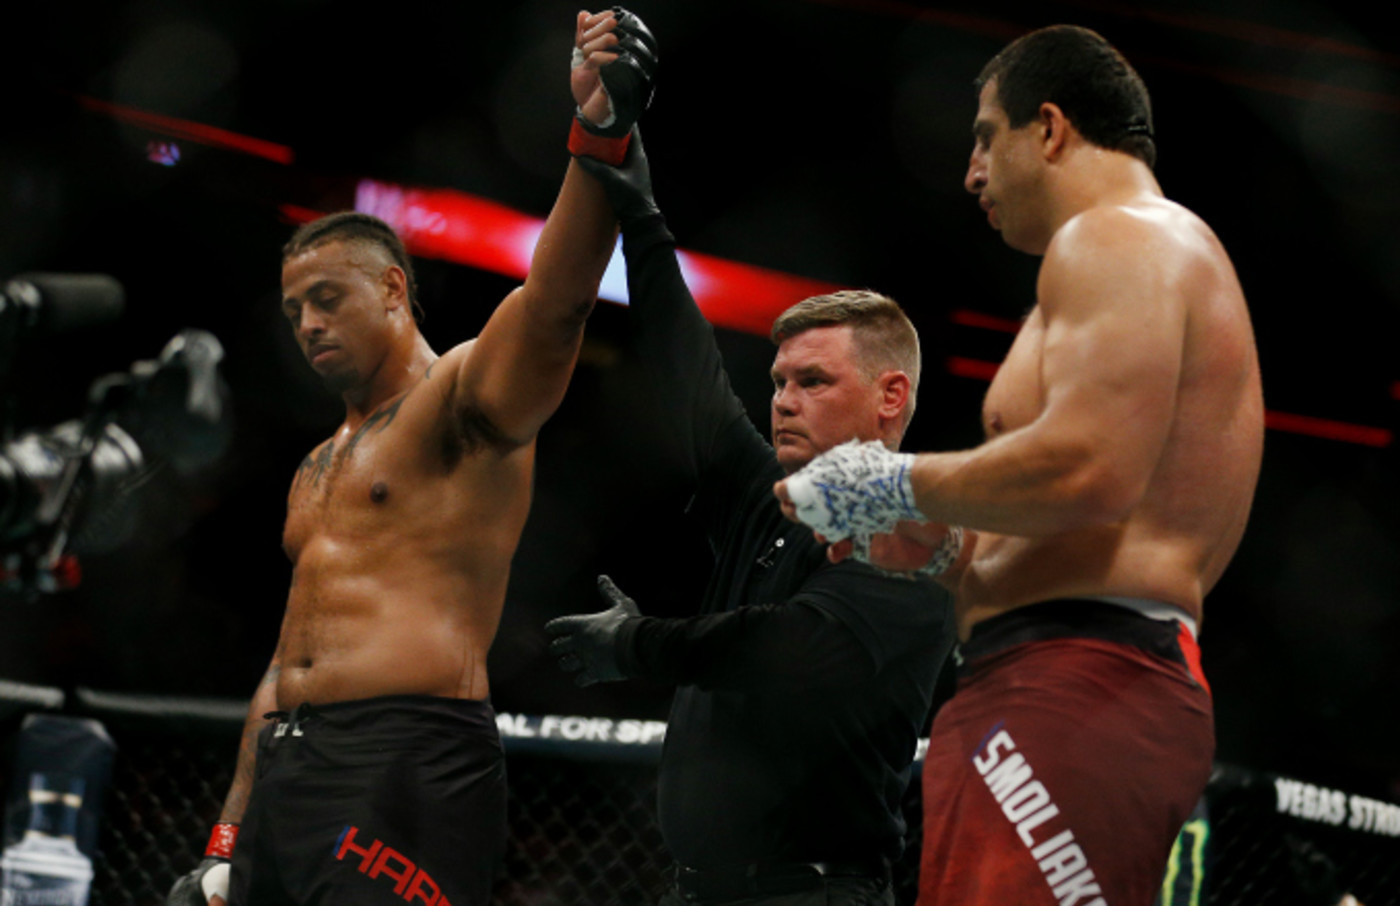 Greg Hardy reacts after defeating Dmitrii Smoliakov